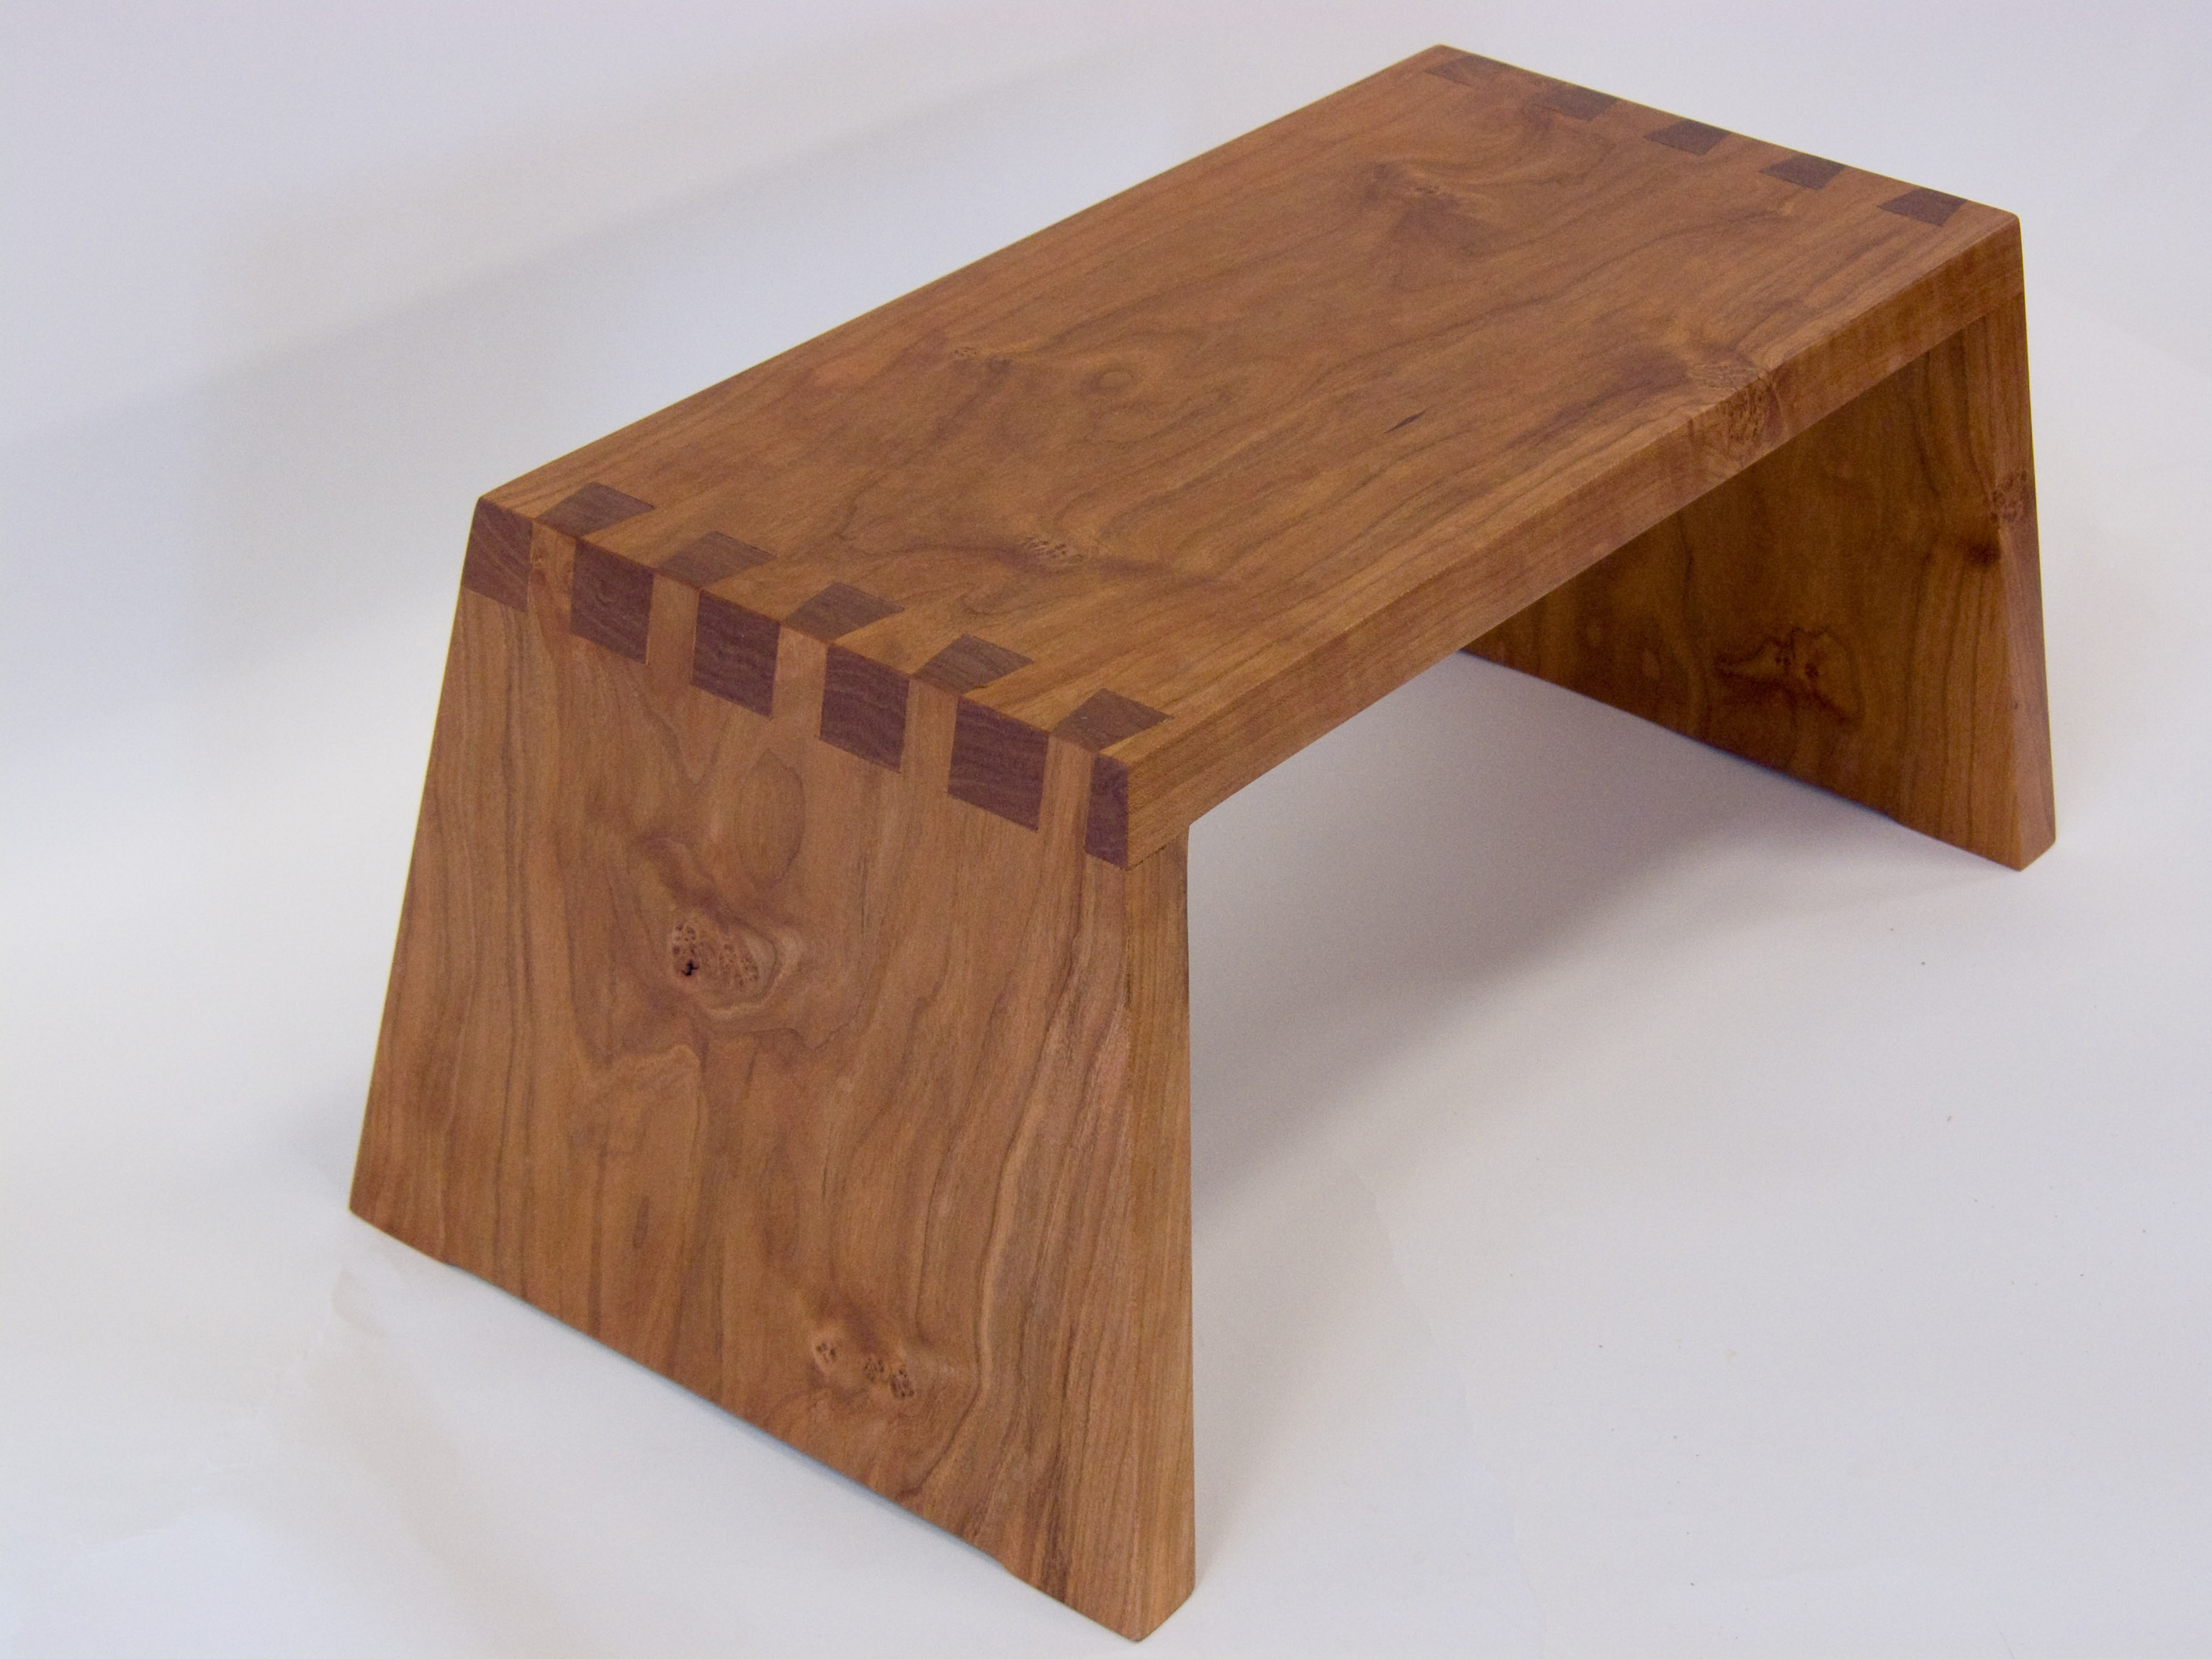 Wooden Steps Make A Beautiful Dovetail Wooden Step Stool